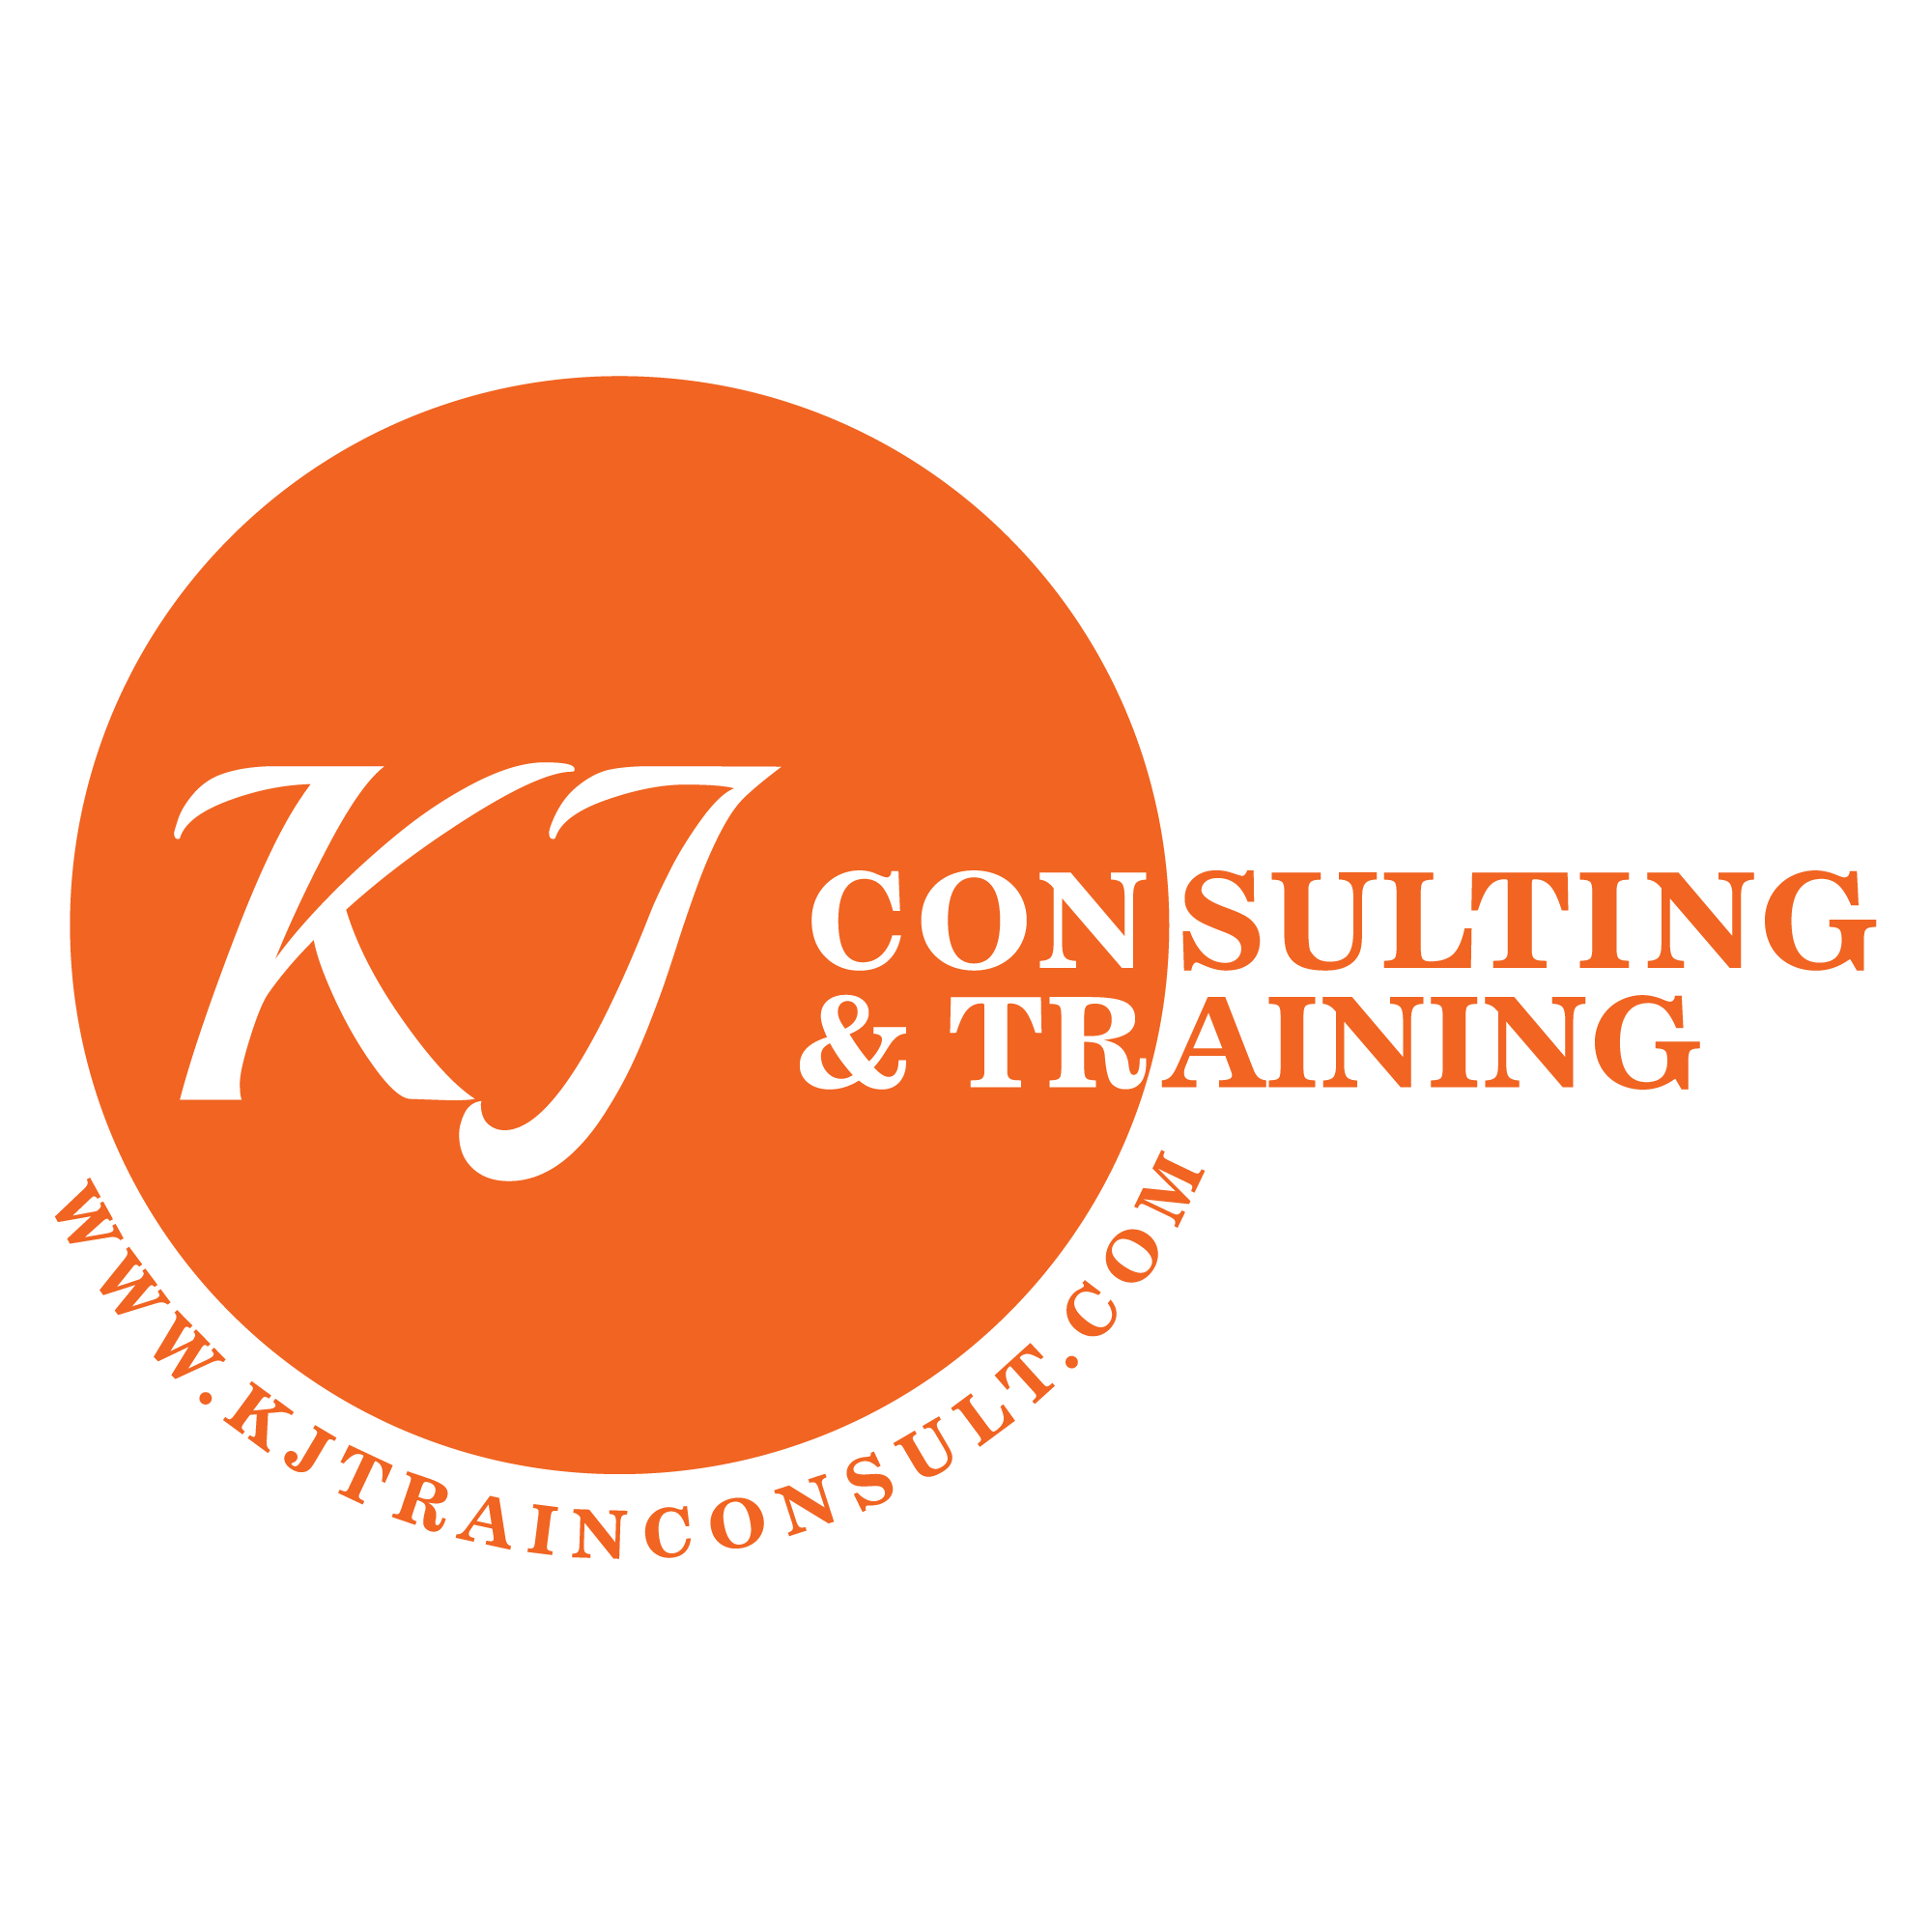 KJ Training and Consulting